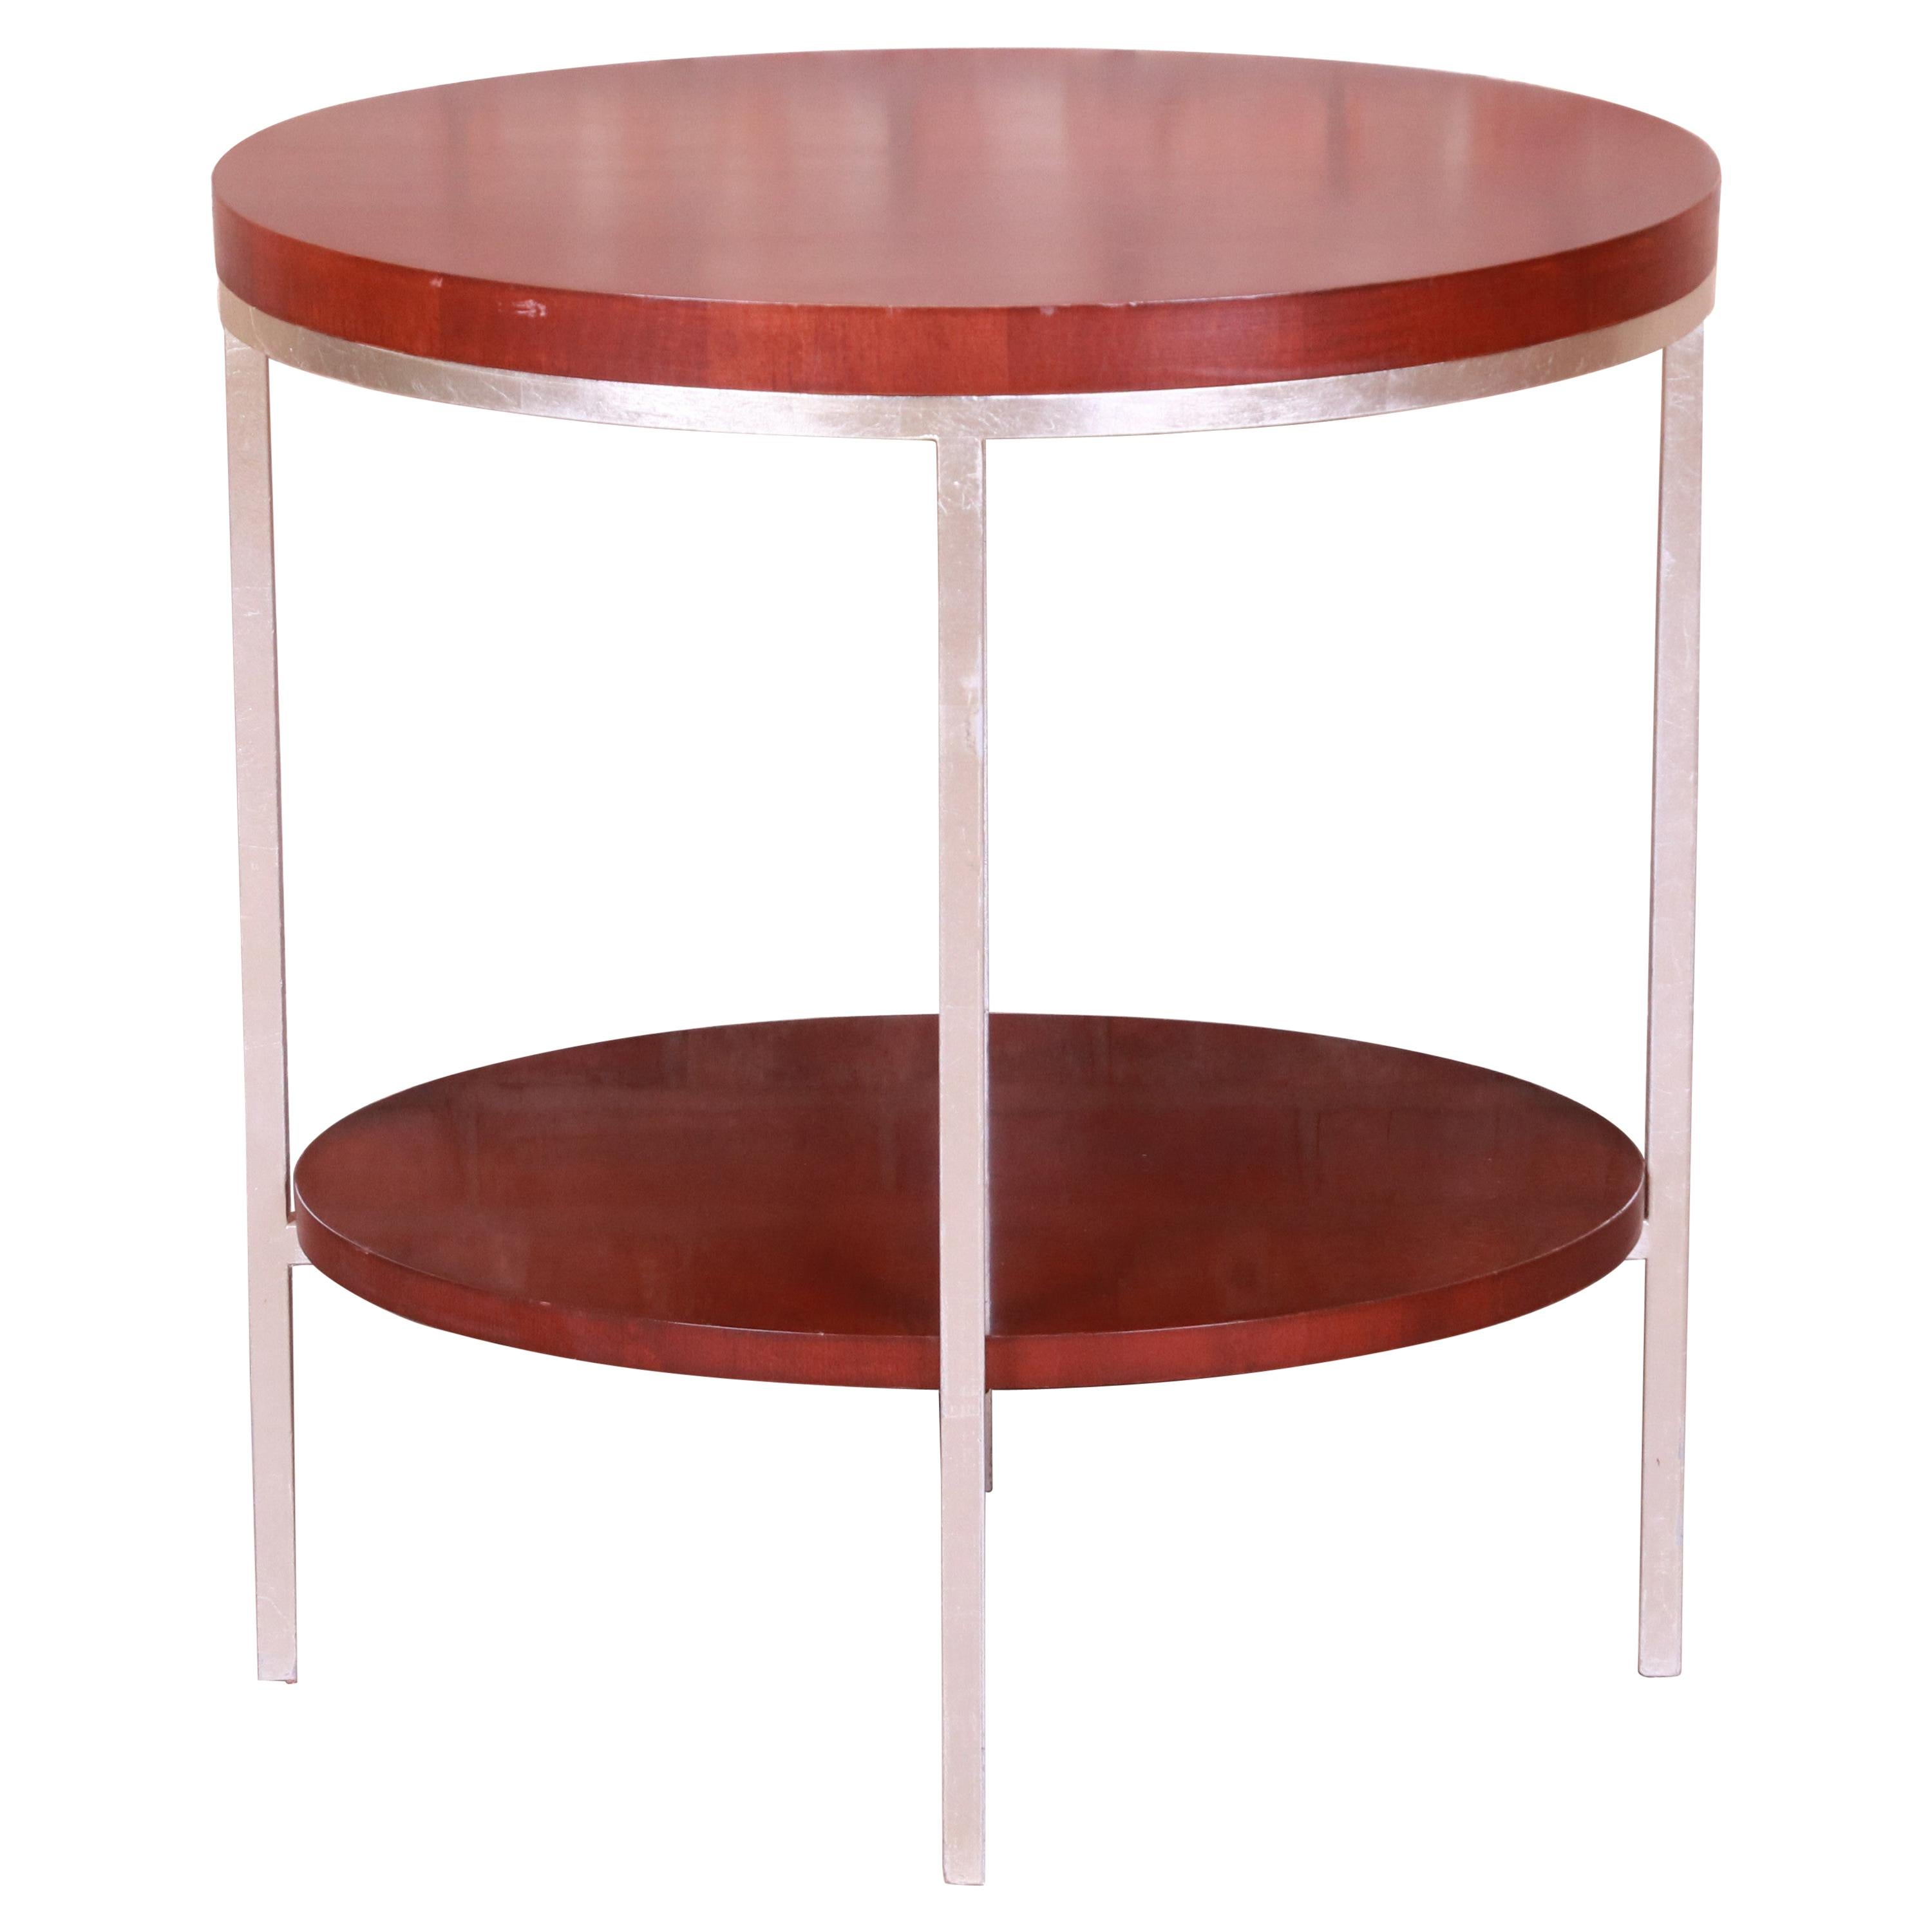 Baker Furniture Modern Mahogany and Steel Two-Tier Side Table